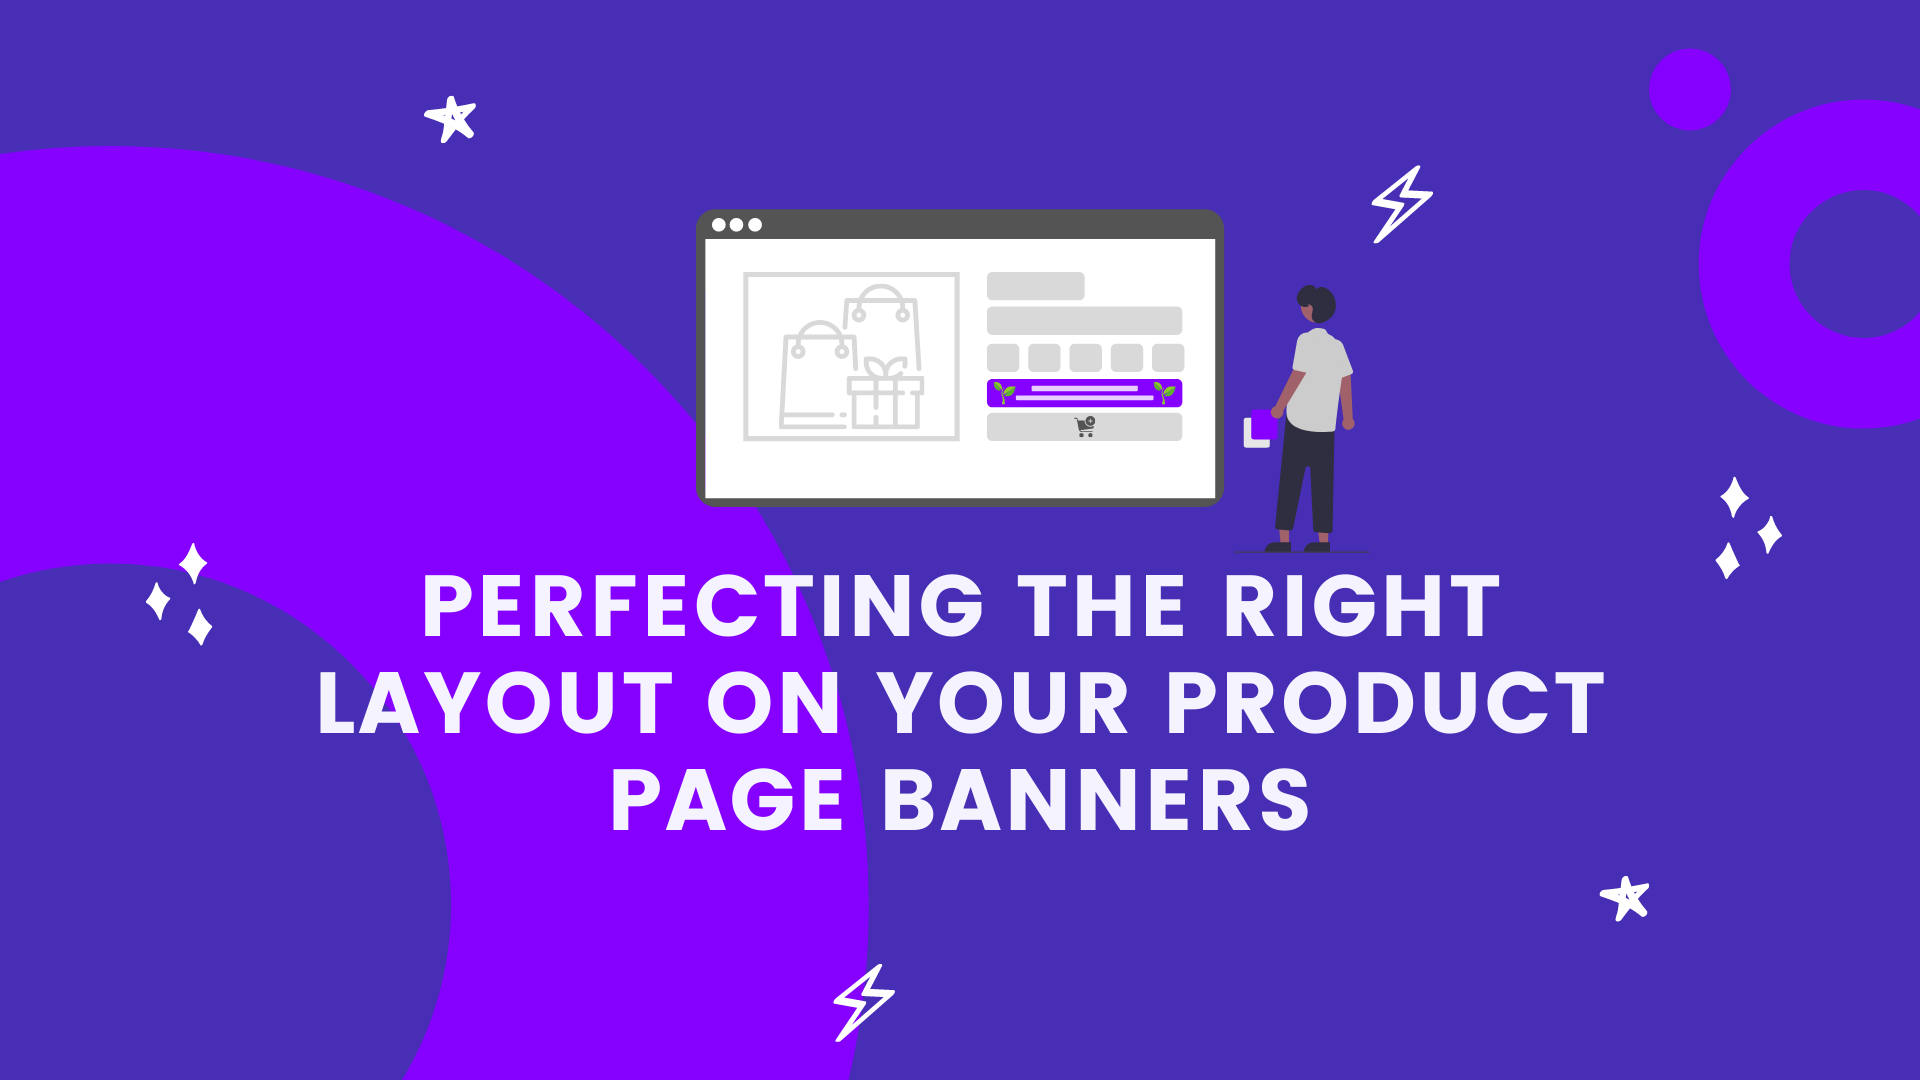 Perfecting The Right Layout on Your Product Page Banners